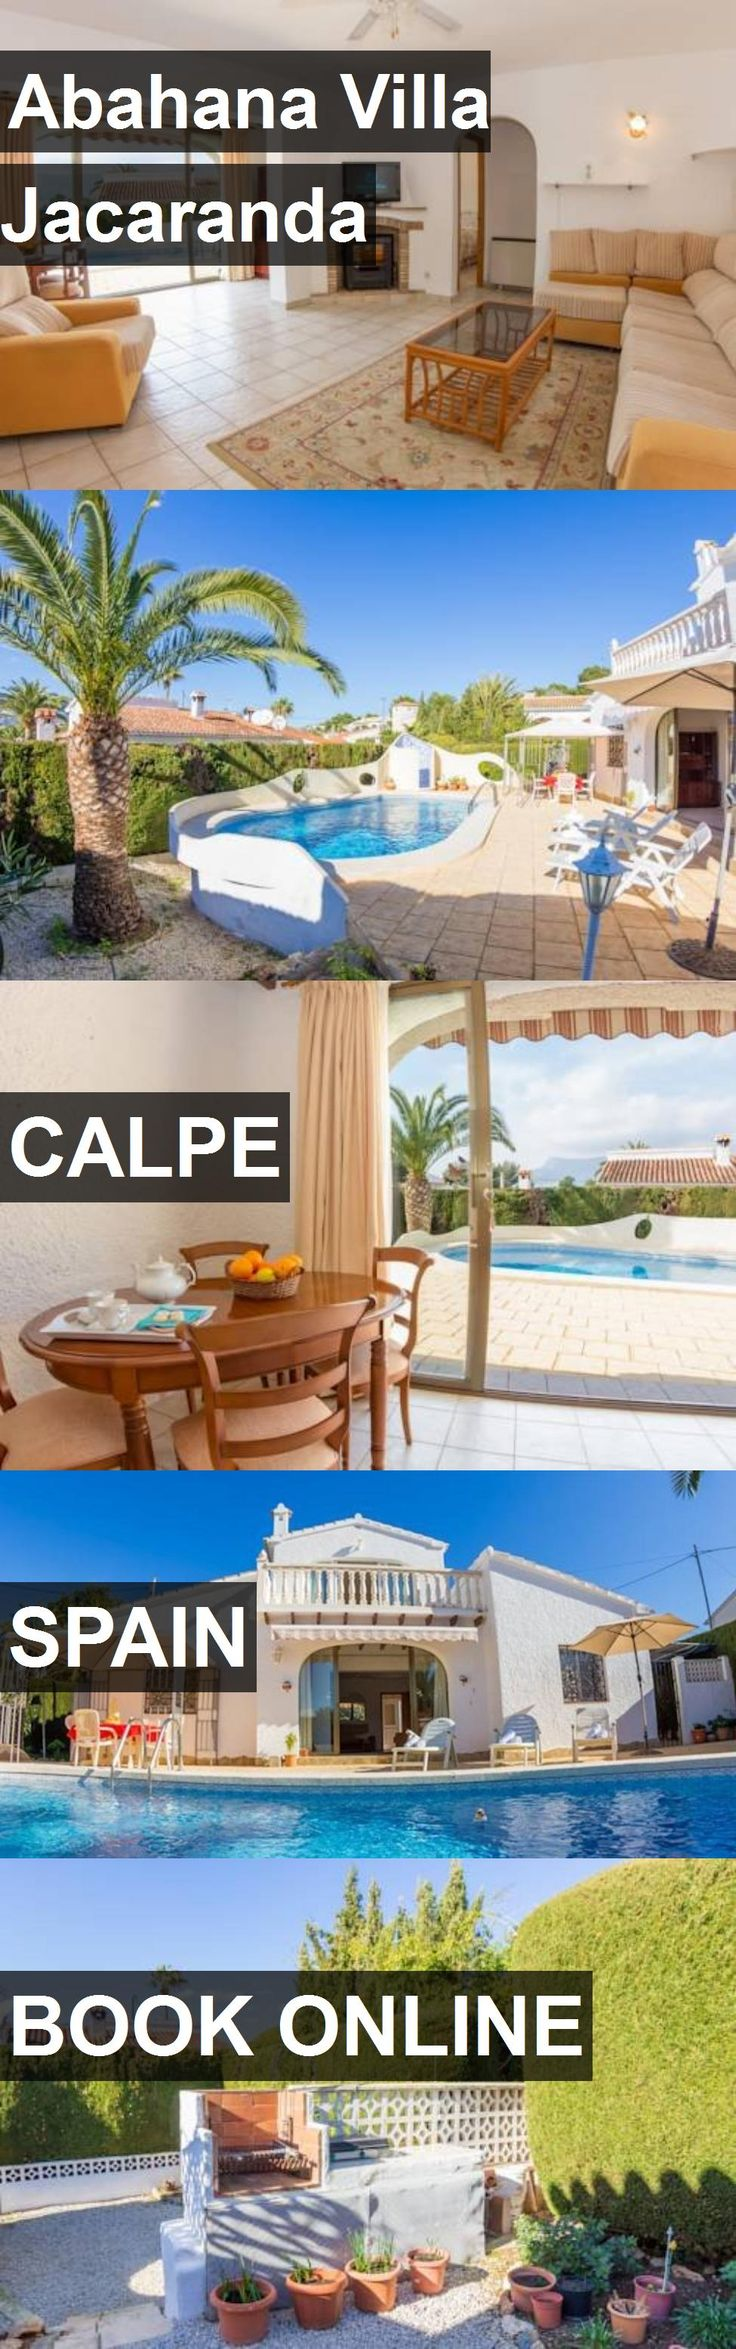 Hotel Abahana Villa Jacaranda in Calpe, Spain. For more information, photos, reviews and best prices please follow the link. #Spain #Calpe #AbahanaVillaJacaranda #hotel #travel #vacation